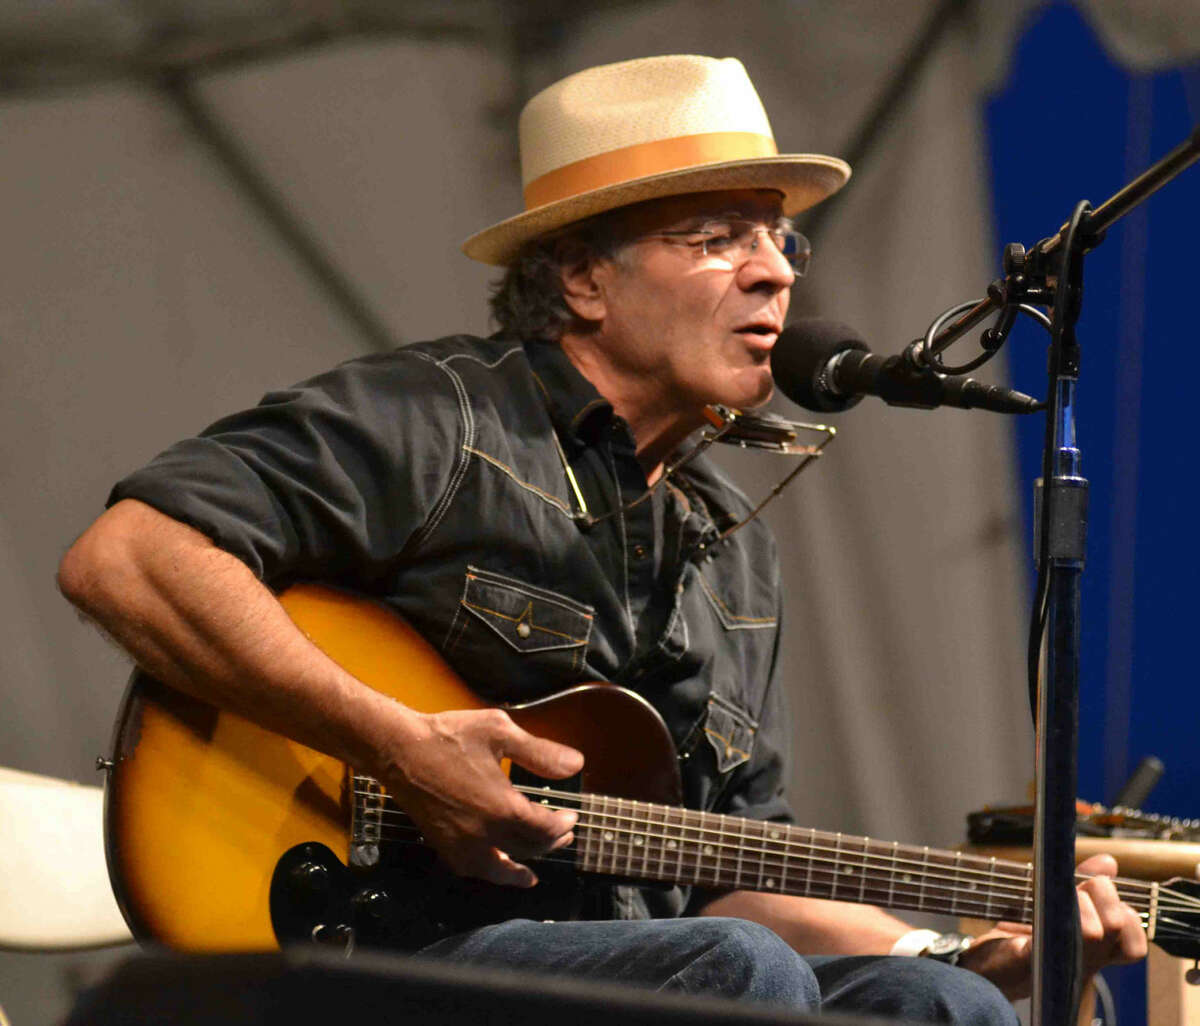 Photo by Mike Horyzun Ray Bonneville sings and plays guitar during the Falcon Ridge Folk Festival in Hilldale, NY last weekend.